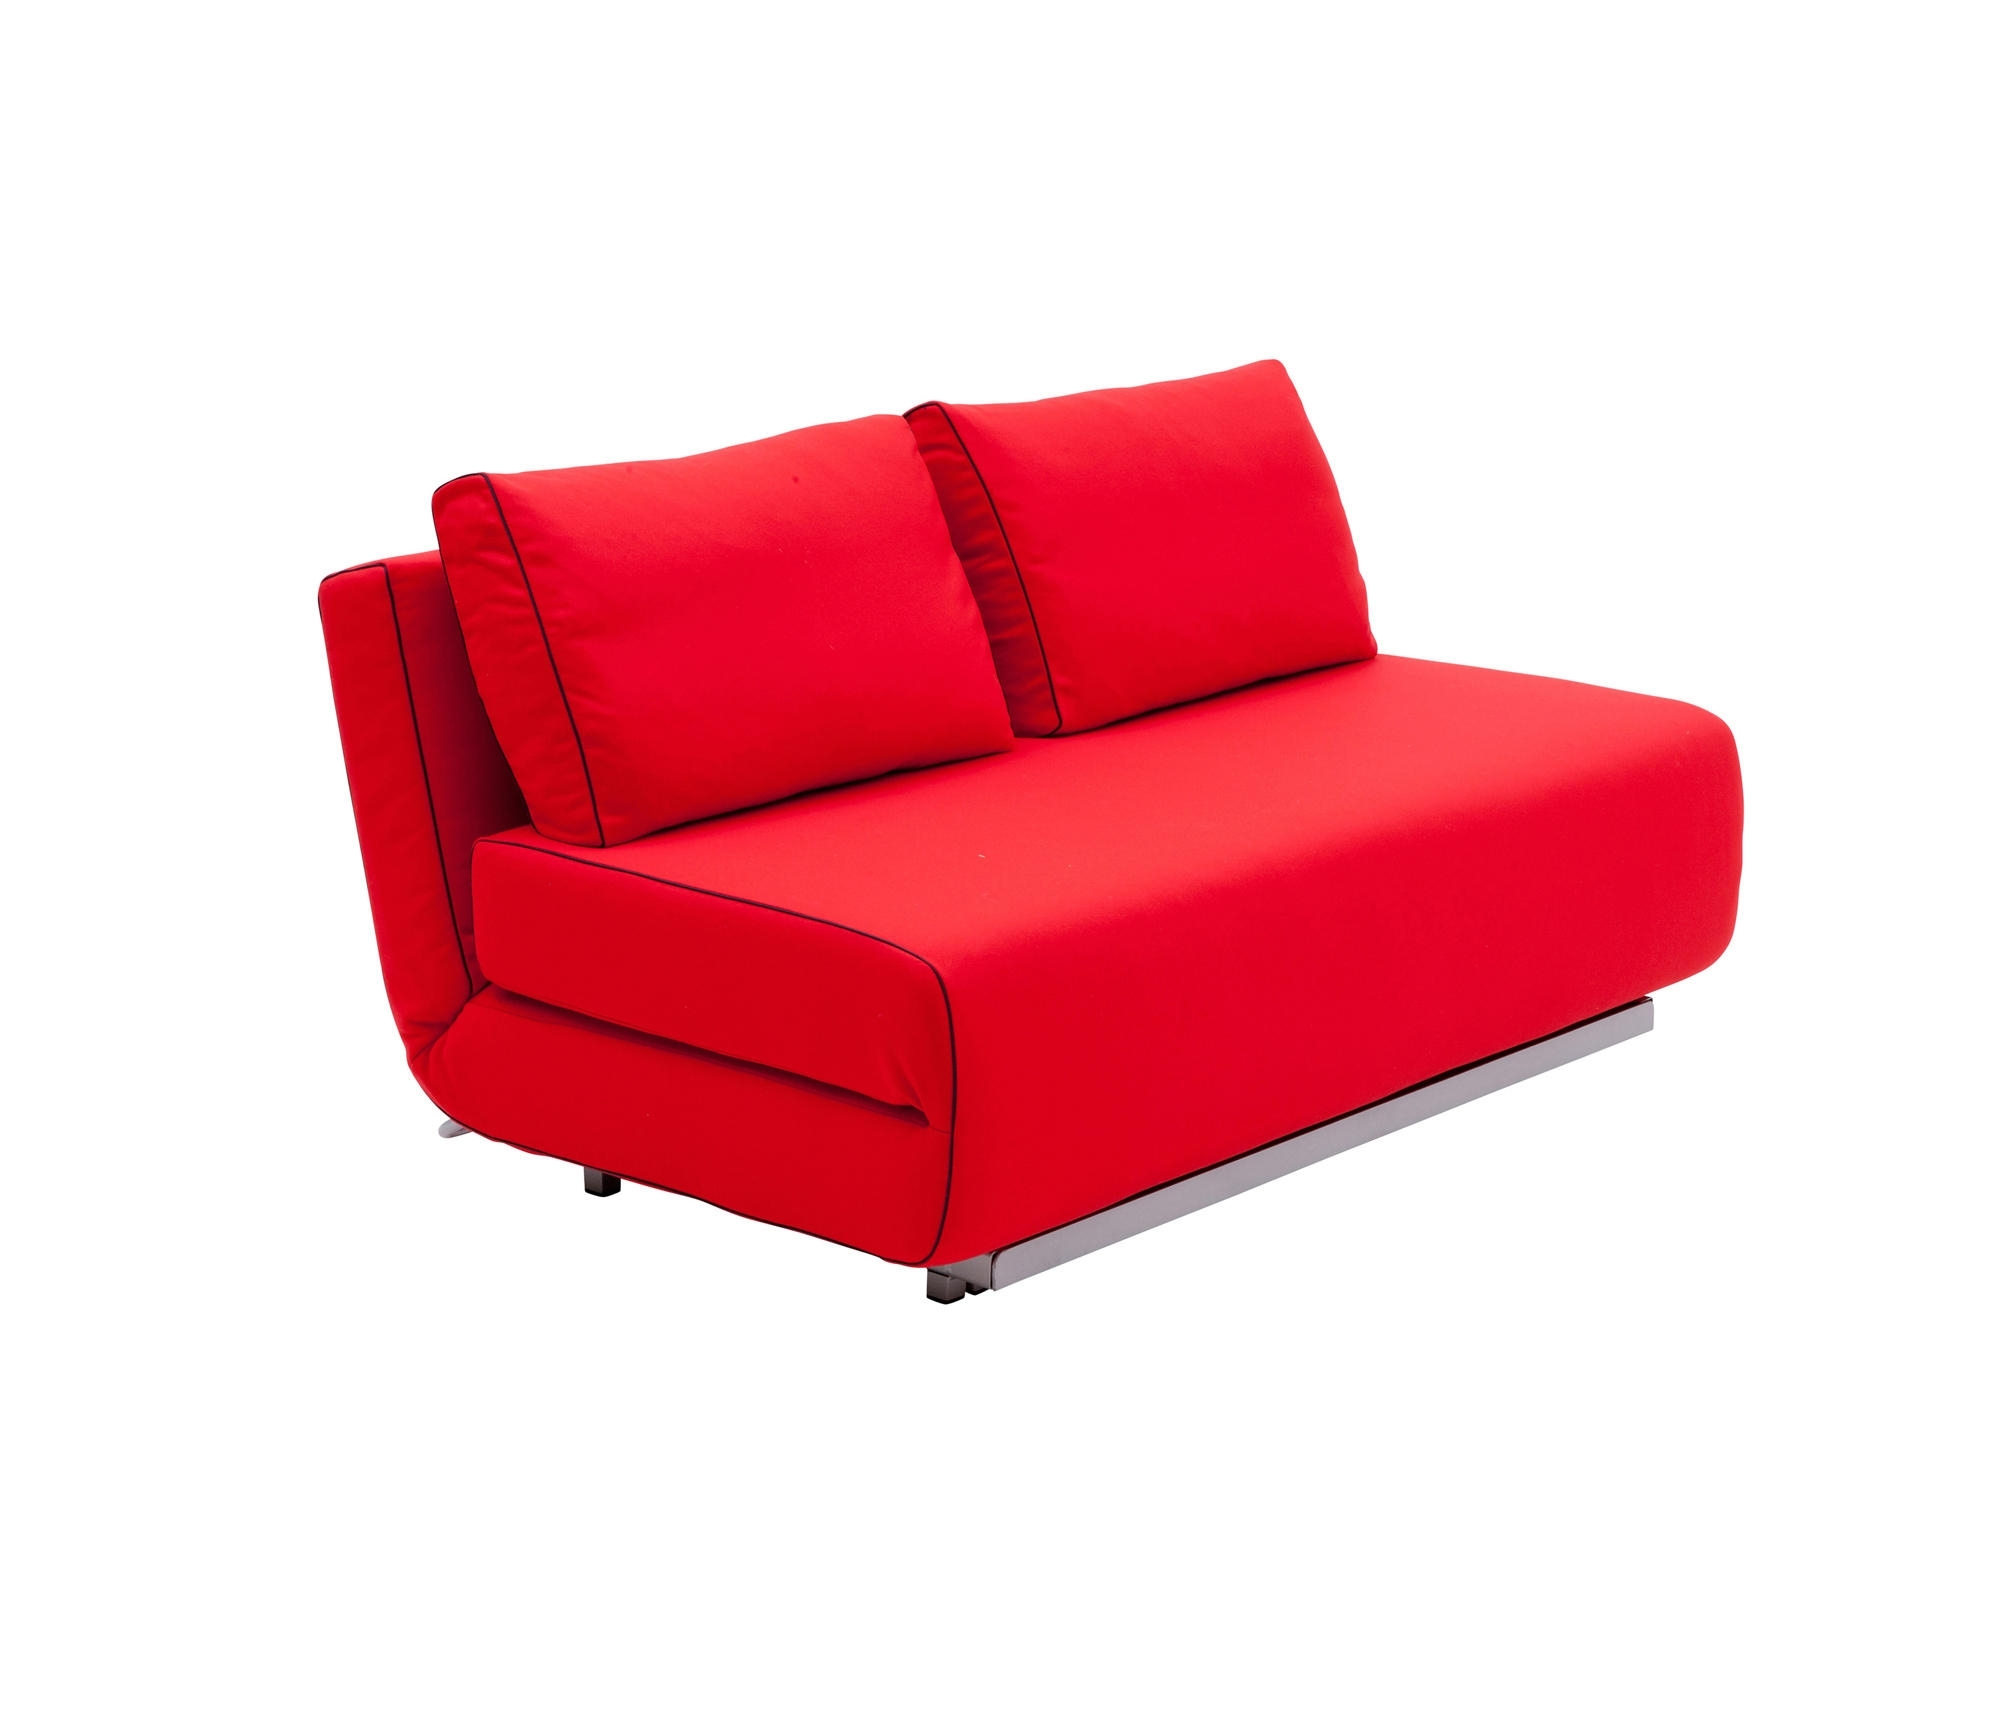 City Sofa Beds In Preferred City Sofa – Sofa Beds From Softline A/s (View 7 of 20)